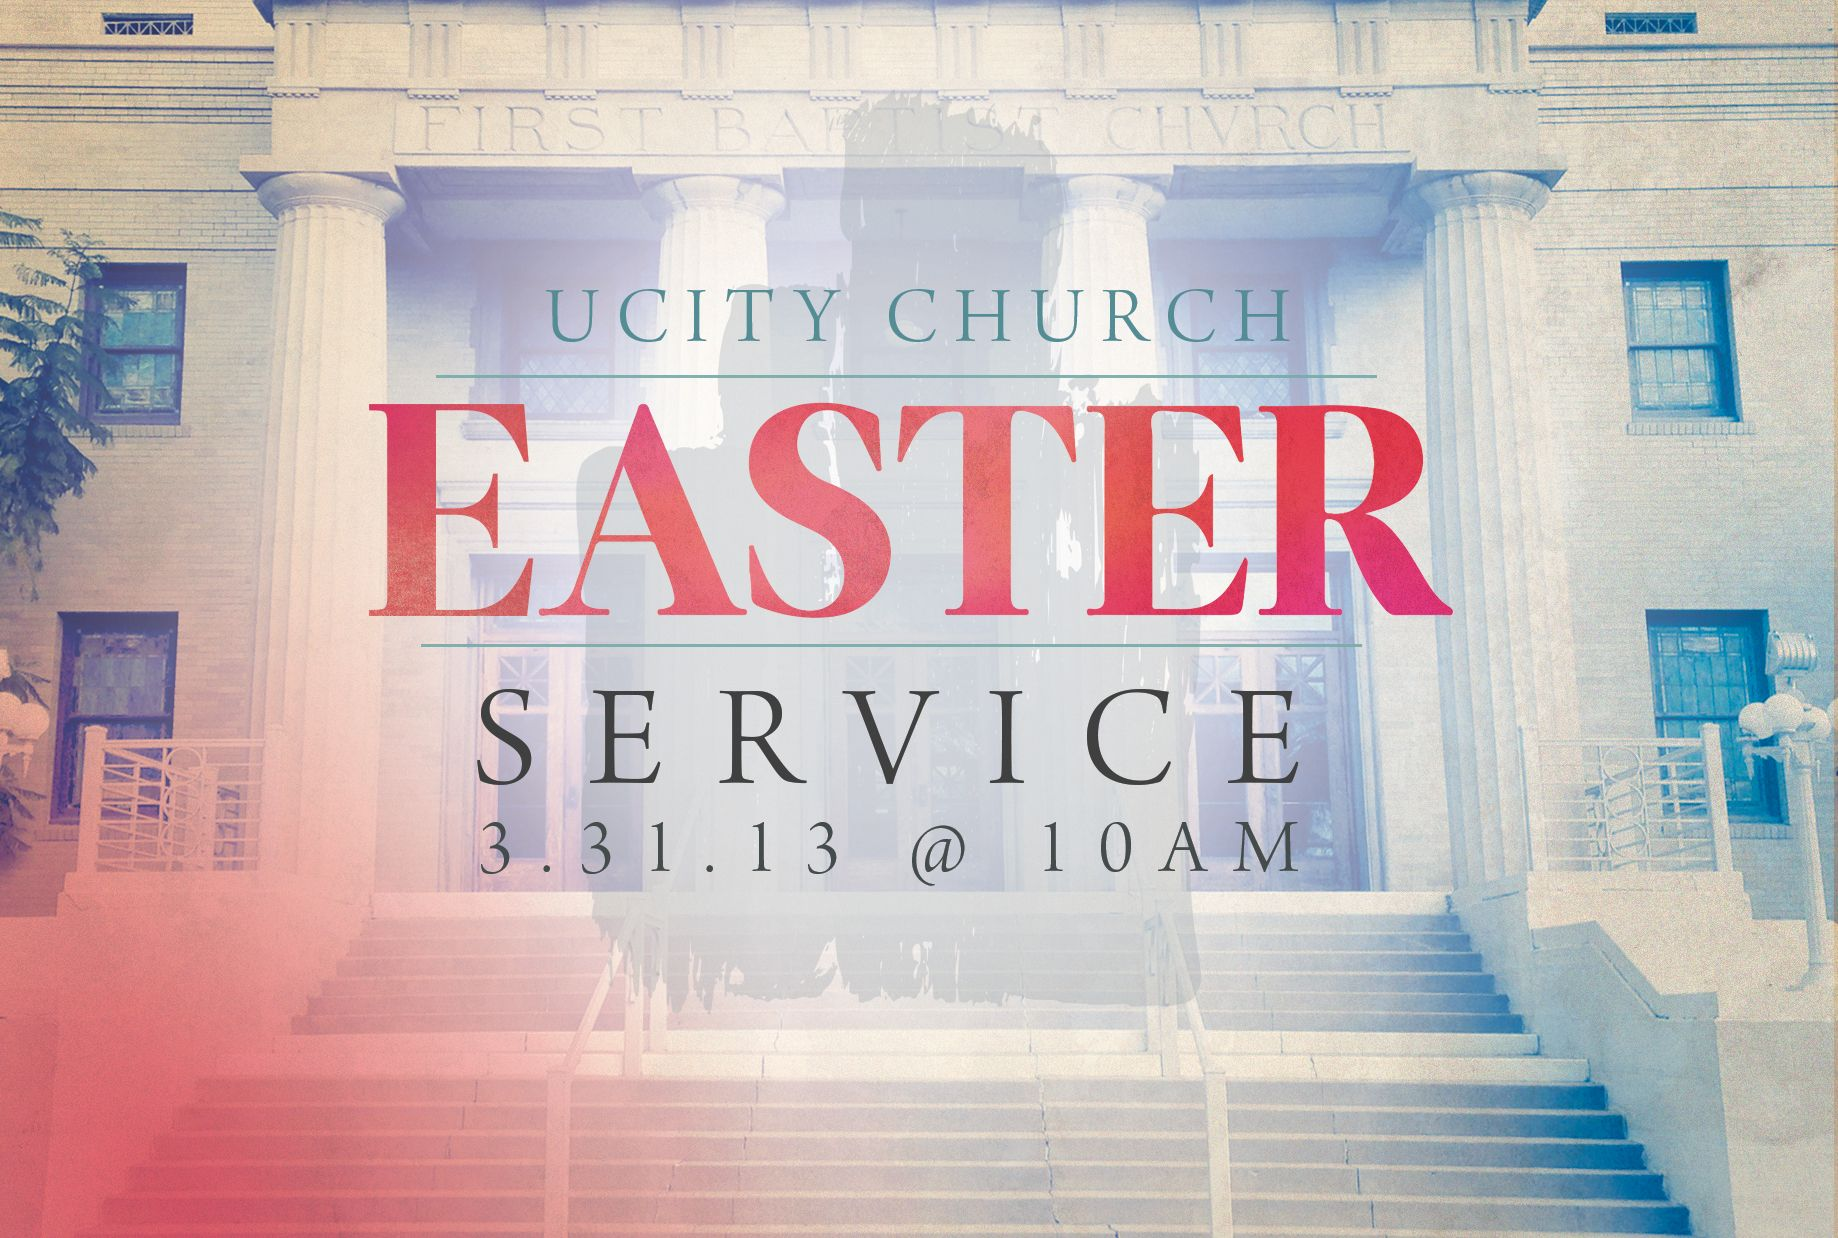 My design for Easter this year at UCity utilizing mostly our building as inspiration...